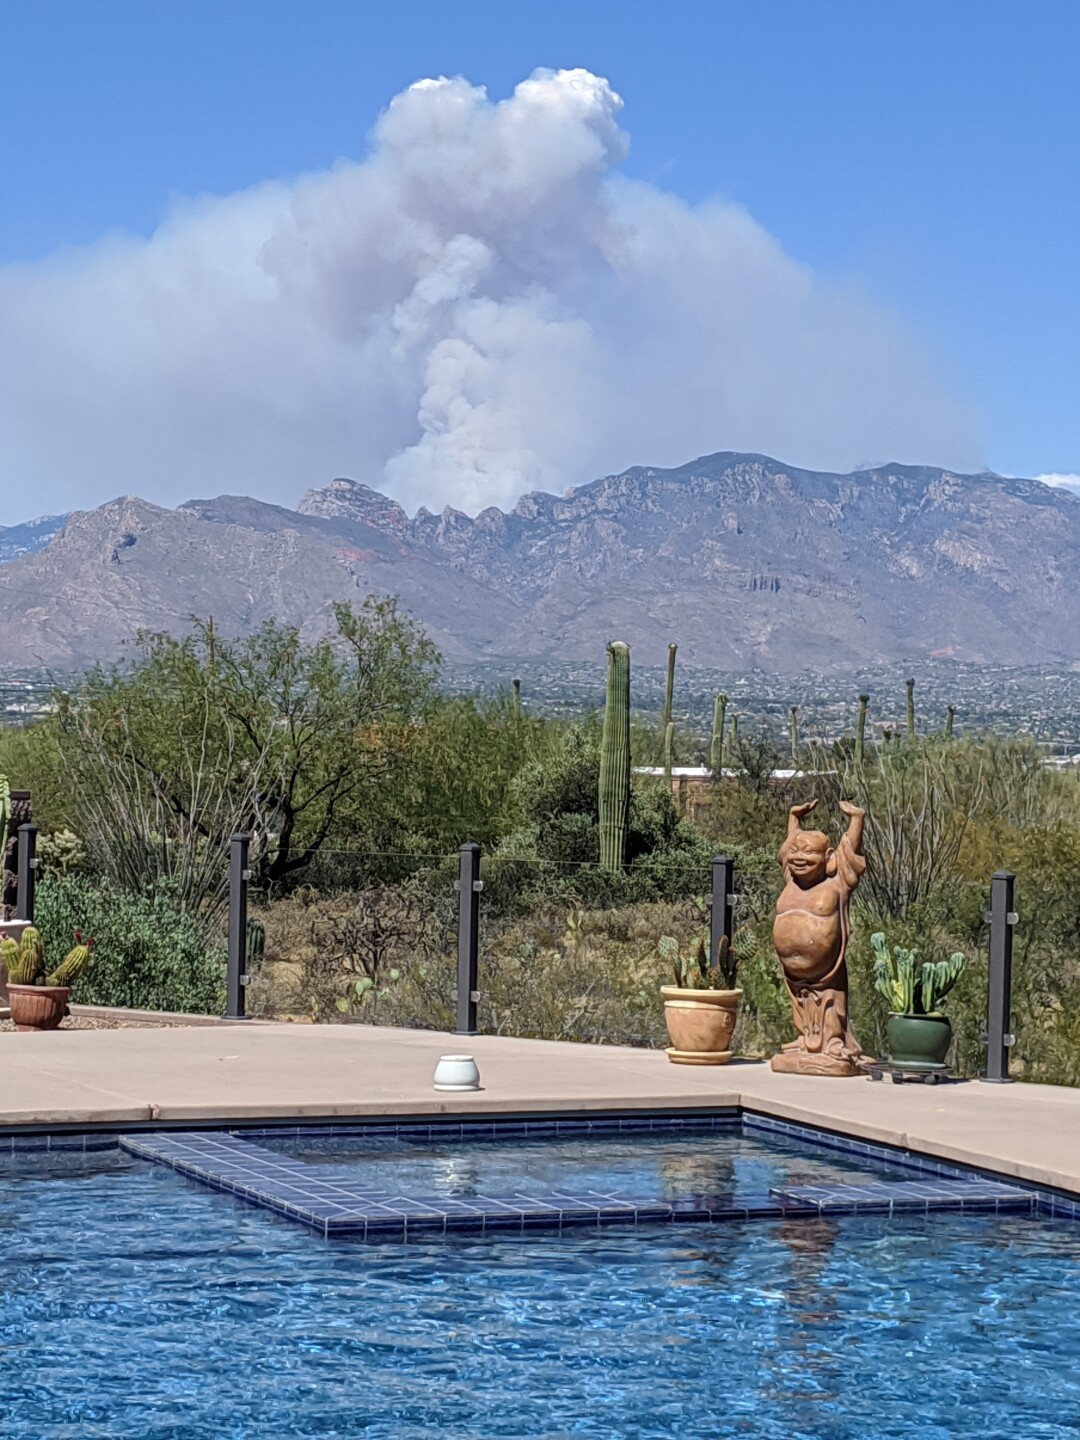 Bighorn Fire in the Catalina Mountains seen from a distance